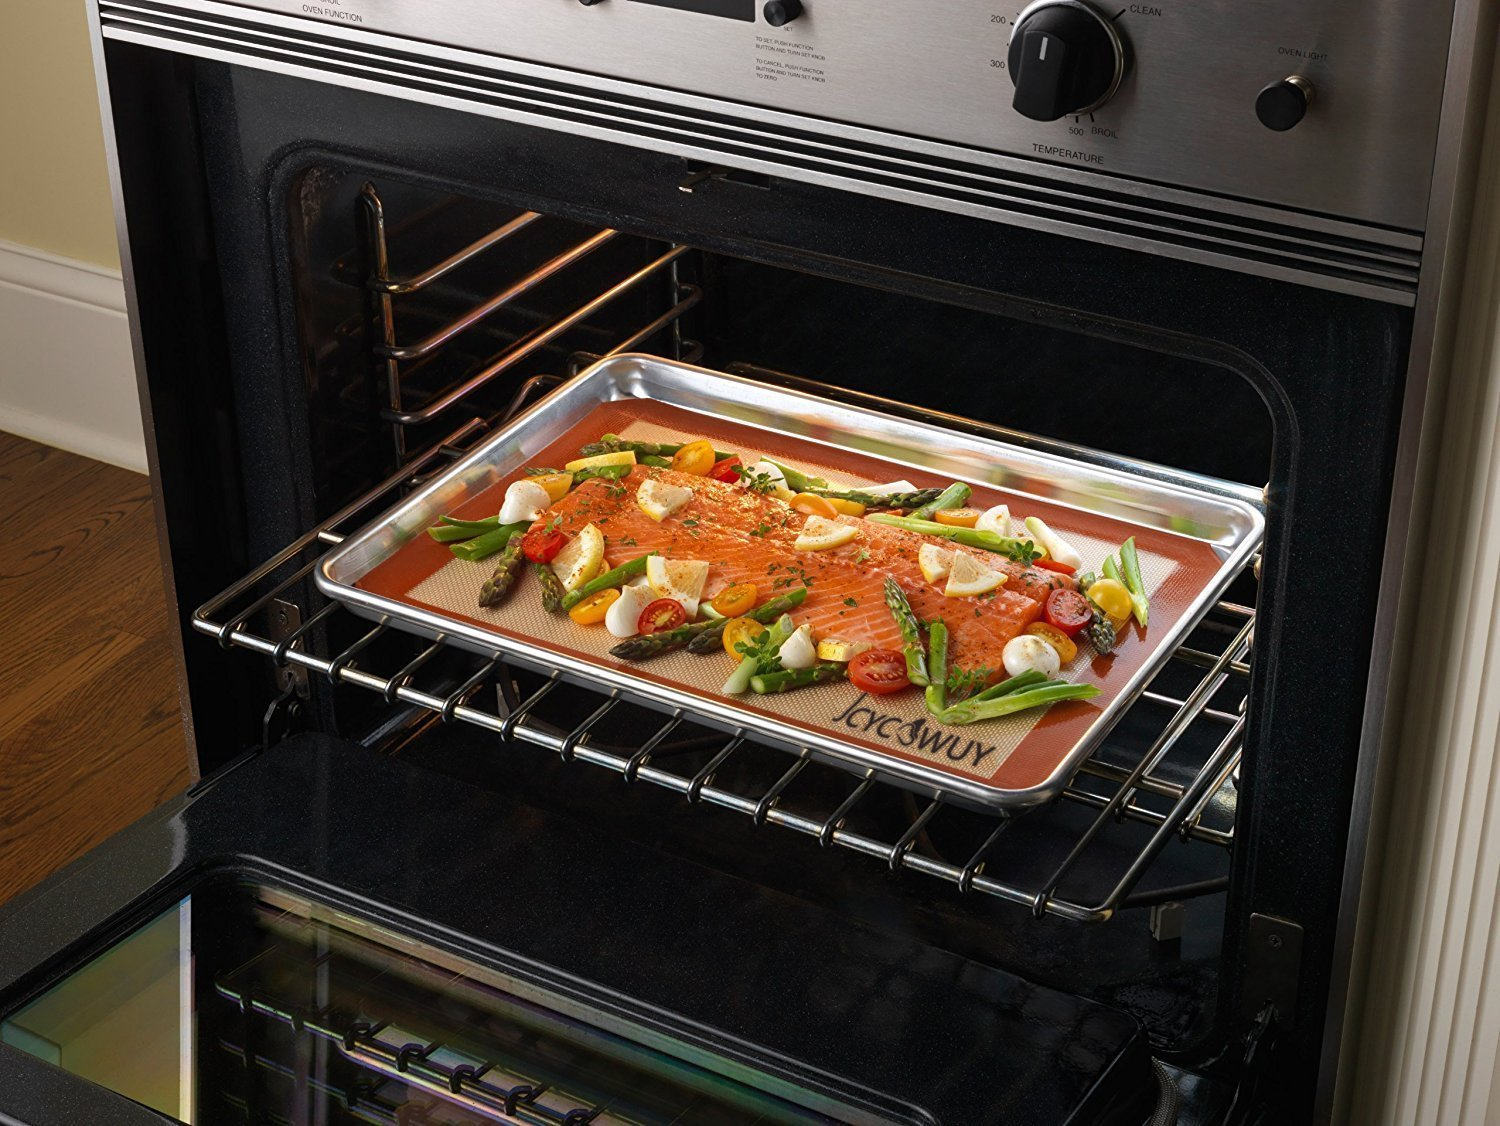 Silicone Baking Mat Set of 5 Non Stick 3 Silicone Baking Mats and 1 BBQ Grill Mat and 1 Basting Brush Professional Grade Non Stick Baking Sheet for Bake Pans & Rolling Silicone Oven Mat Baking Sheet 4 ❤This baking sheet is suitable for oven, microwave and refrigerator. Can be used at temperatures varying from -40 degree to 500℉ (260°C). High quality and durable, can be reused for up to 4000 times ❤Non-stick, easy to clean, just wash with soap and water, rinse, shake off water and air dry. No oil, sprays or parchment paper needed ❤Made with silicone-coated fiberglass mesh, these professional-grade mats provide evenly spreaded heating. You get consistent, delicious results - no burned or undercooked spots!